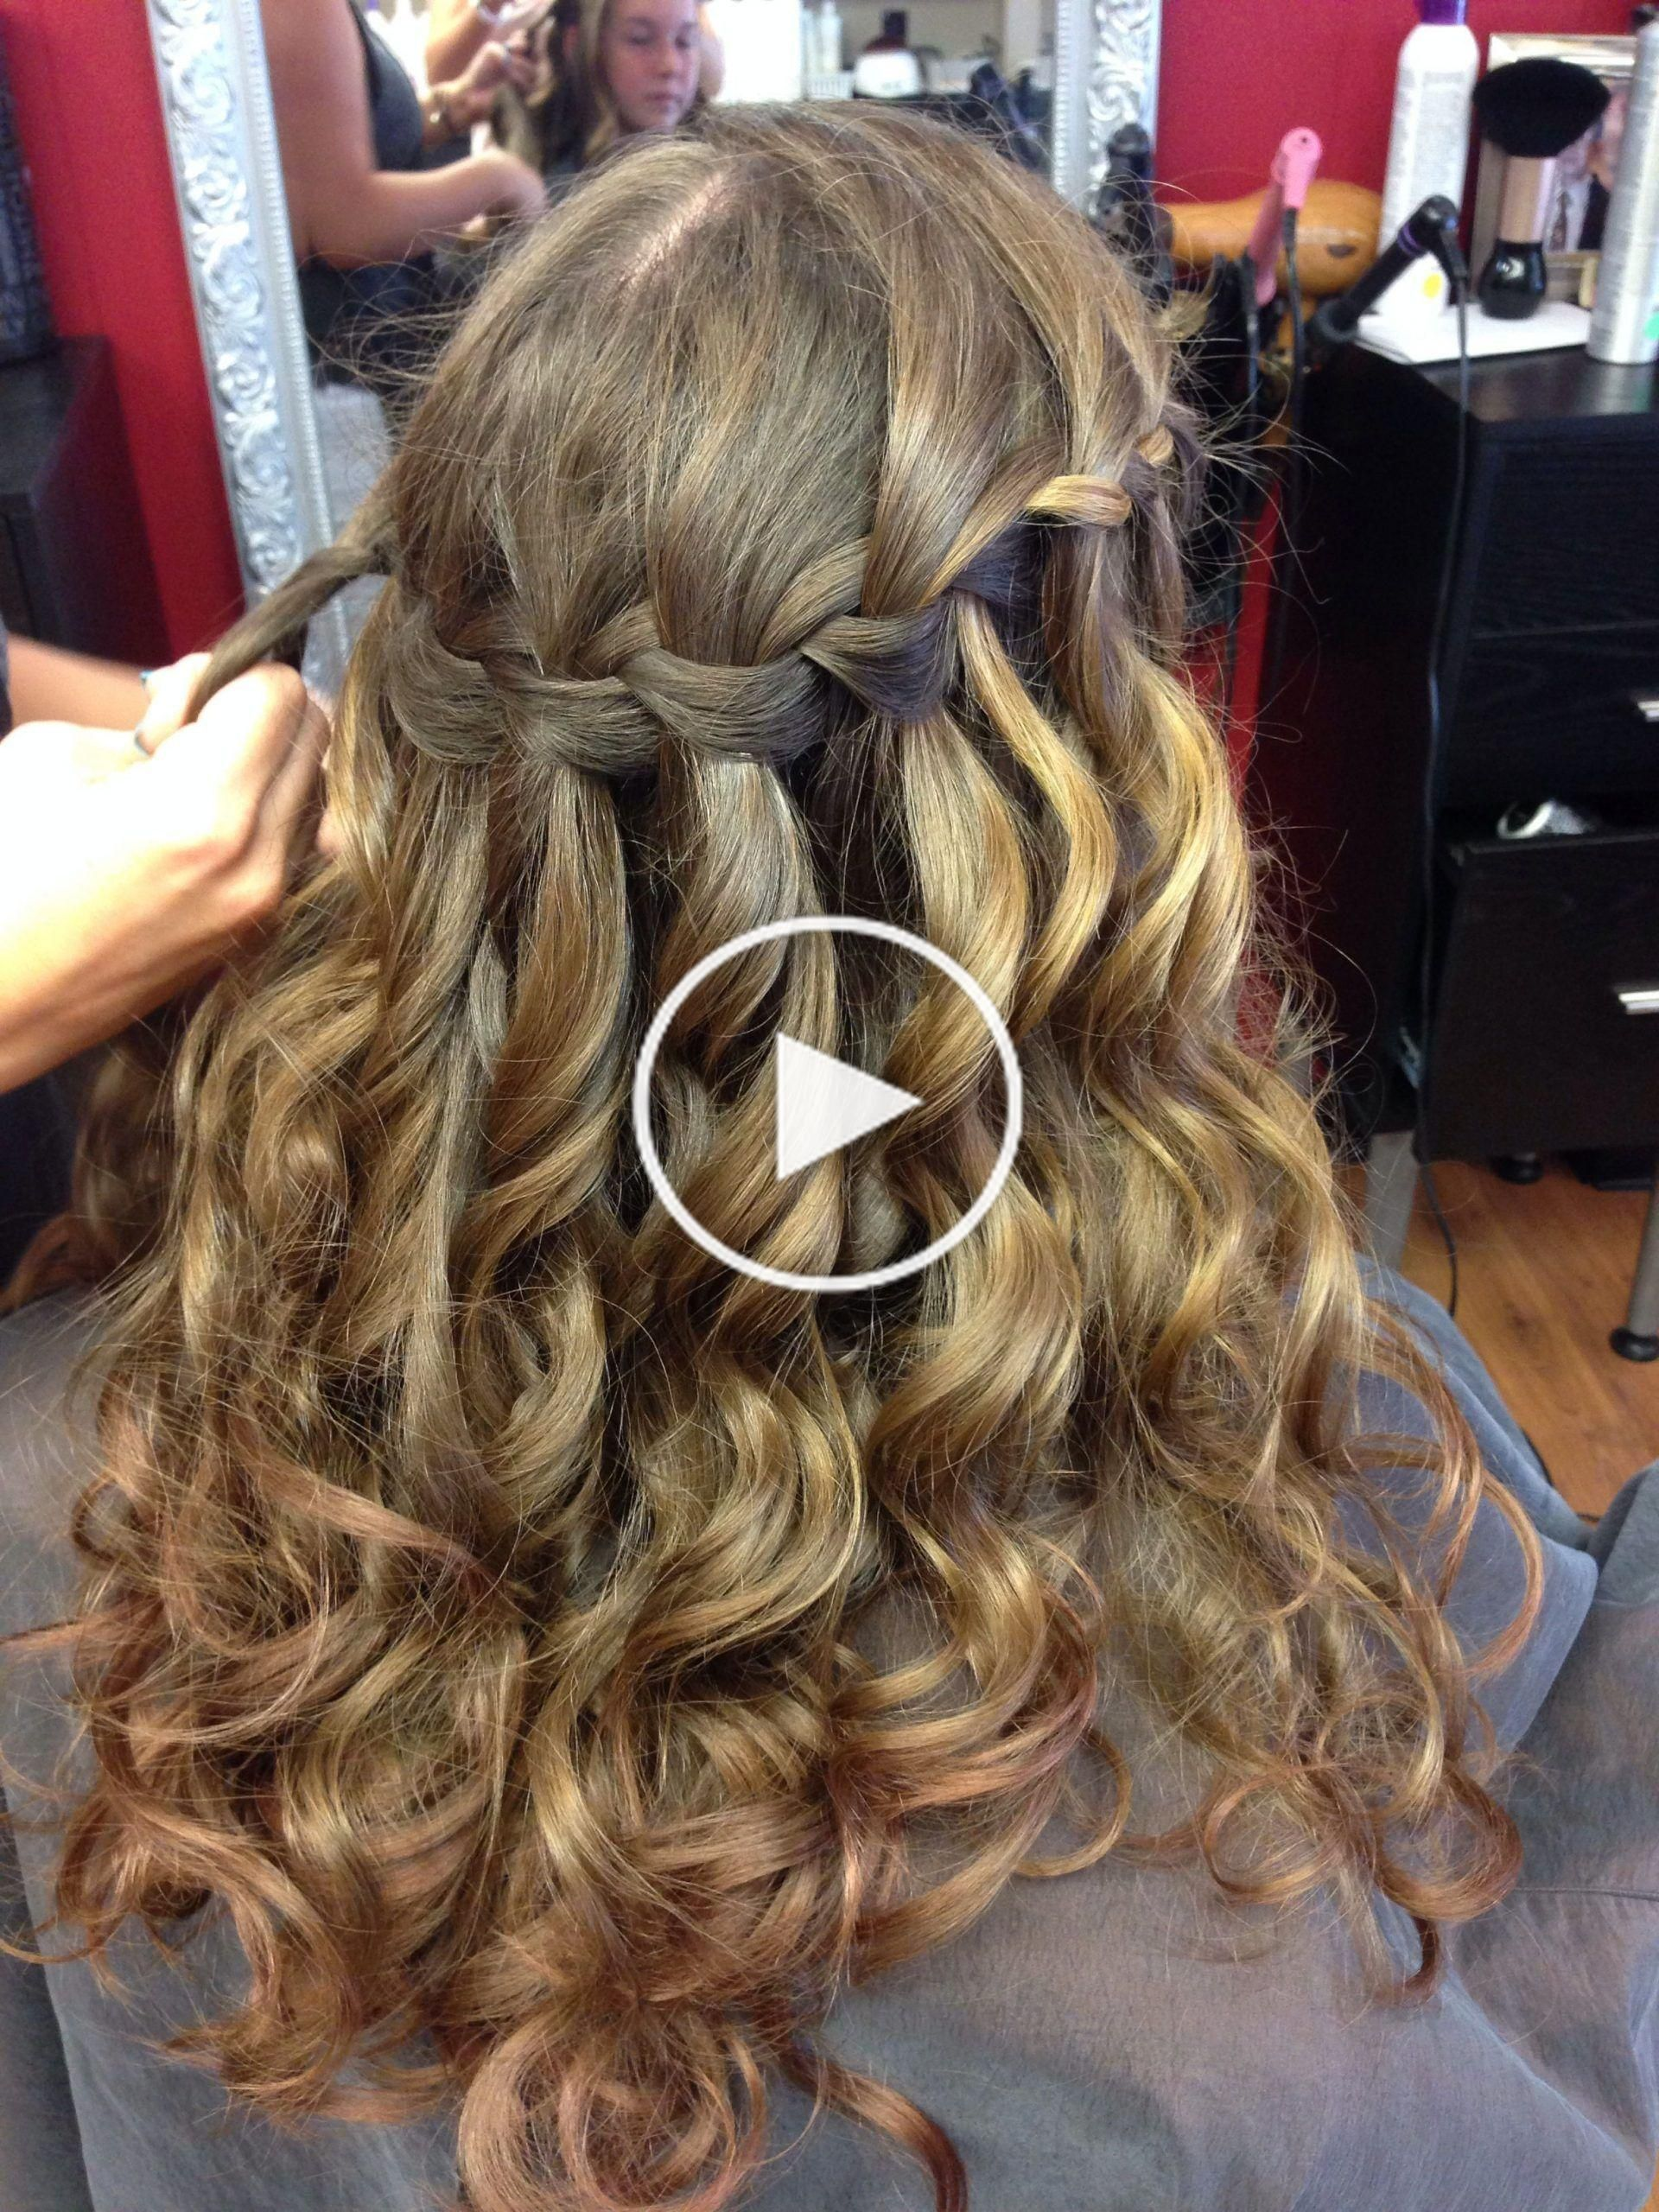 11 Most Effortless Classy Semi Formal Hairstyles 11th Grade